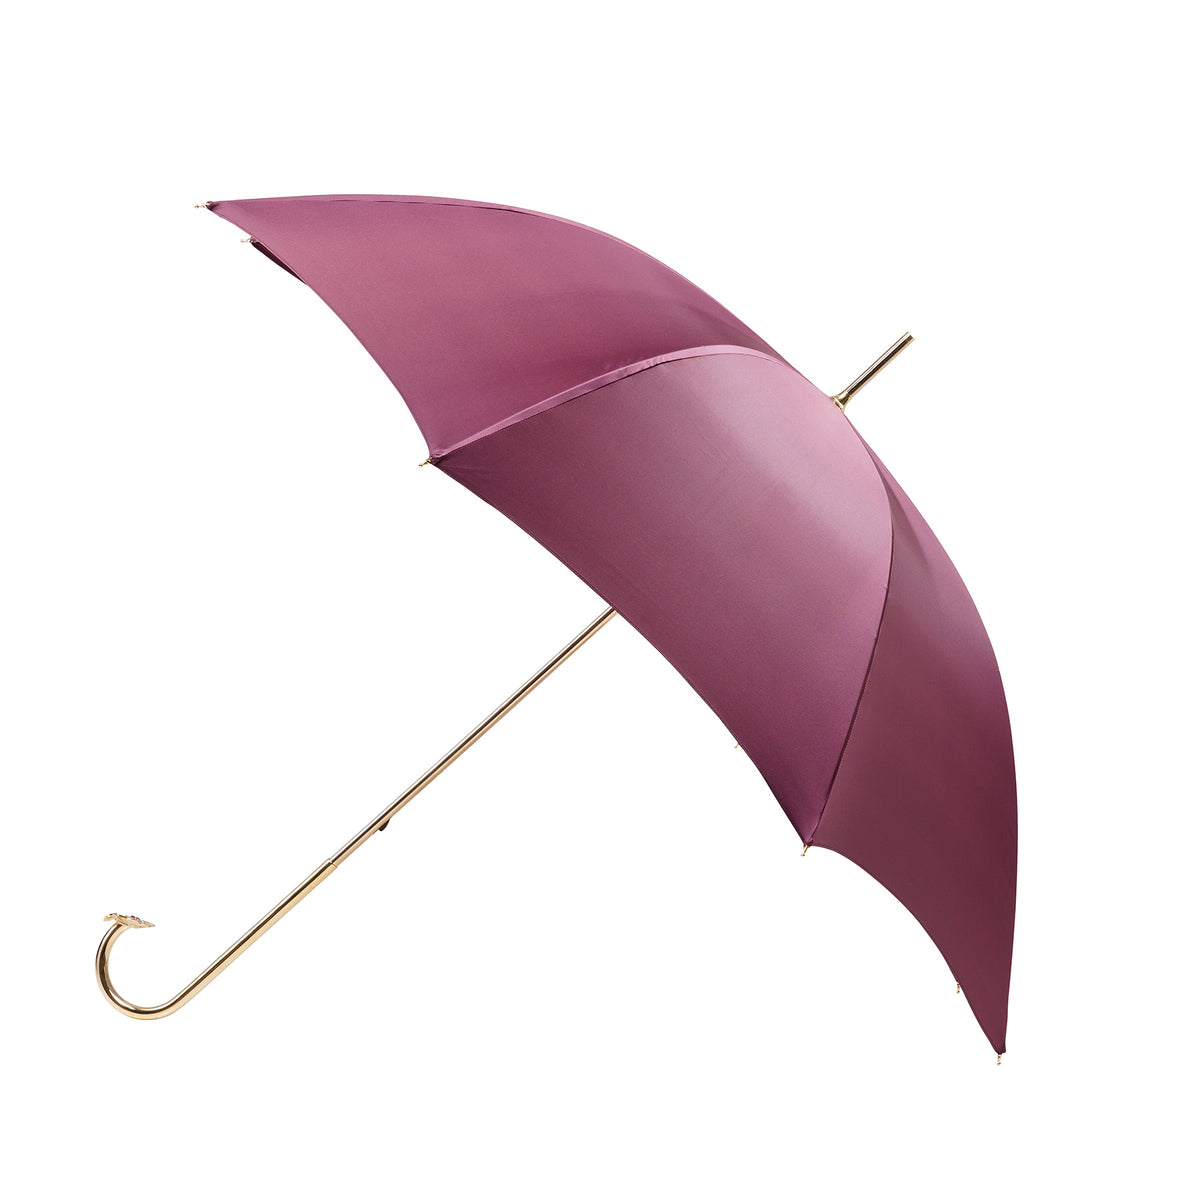 Botanical Illuminations Umbrella - Maroon